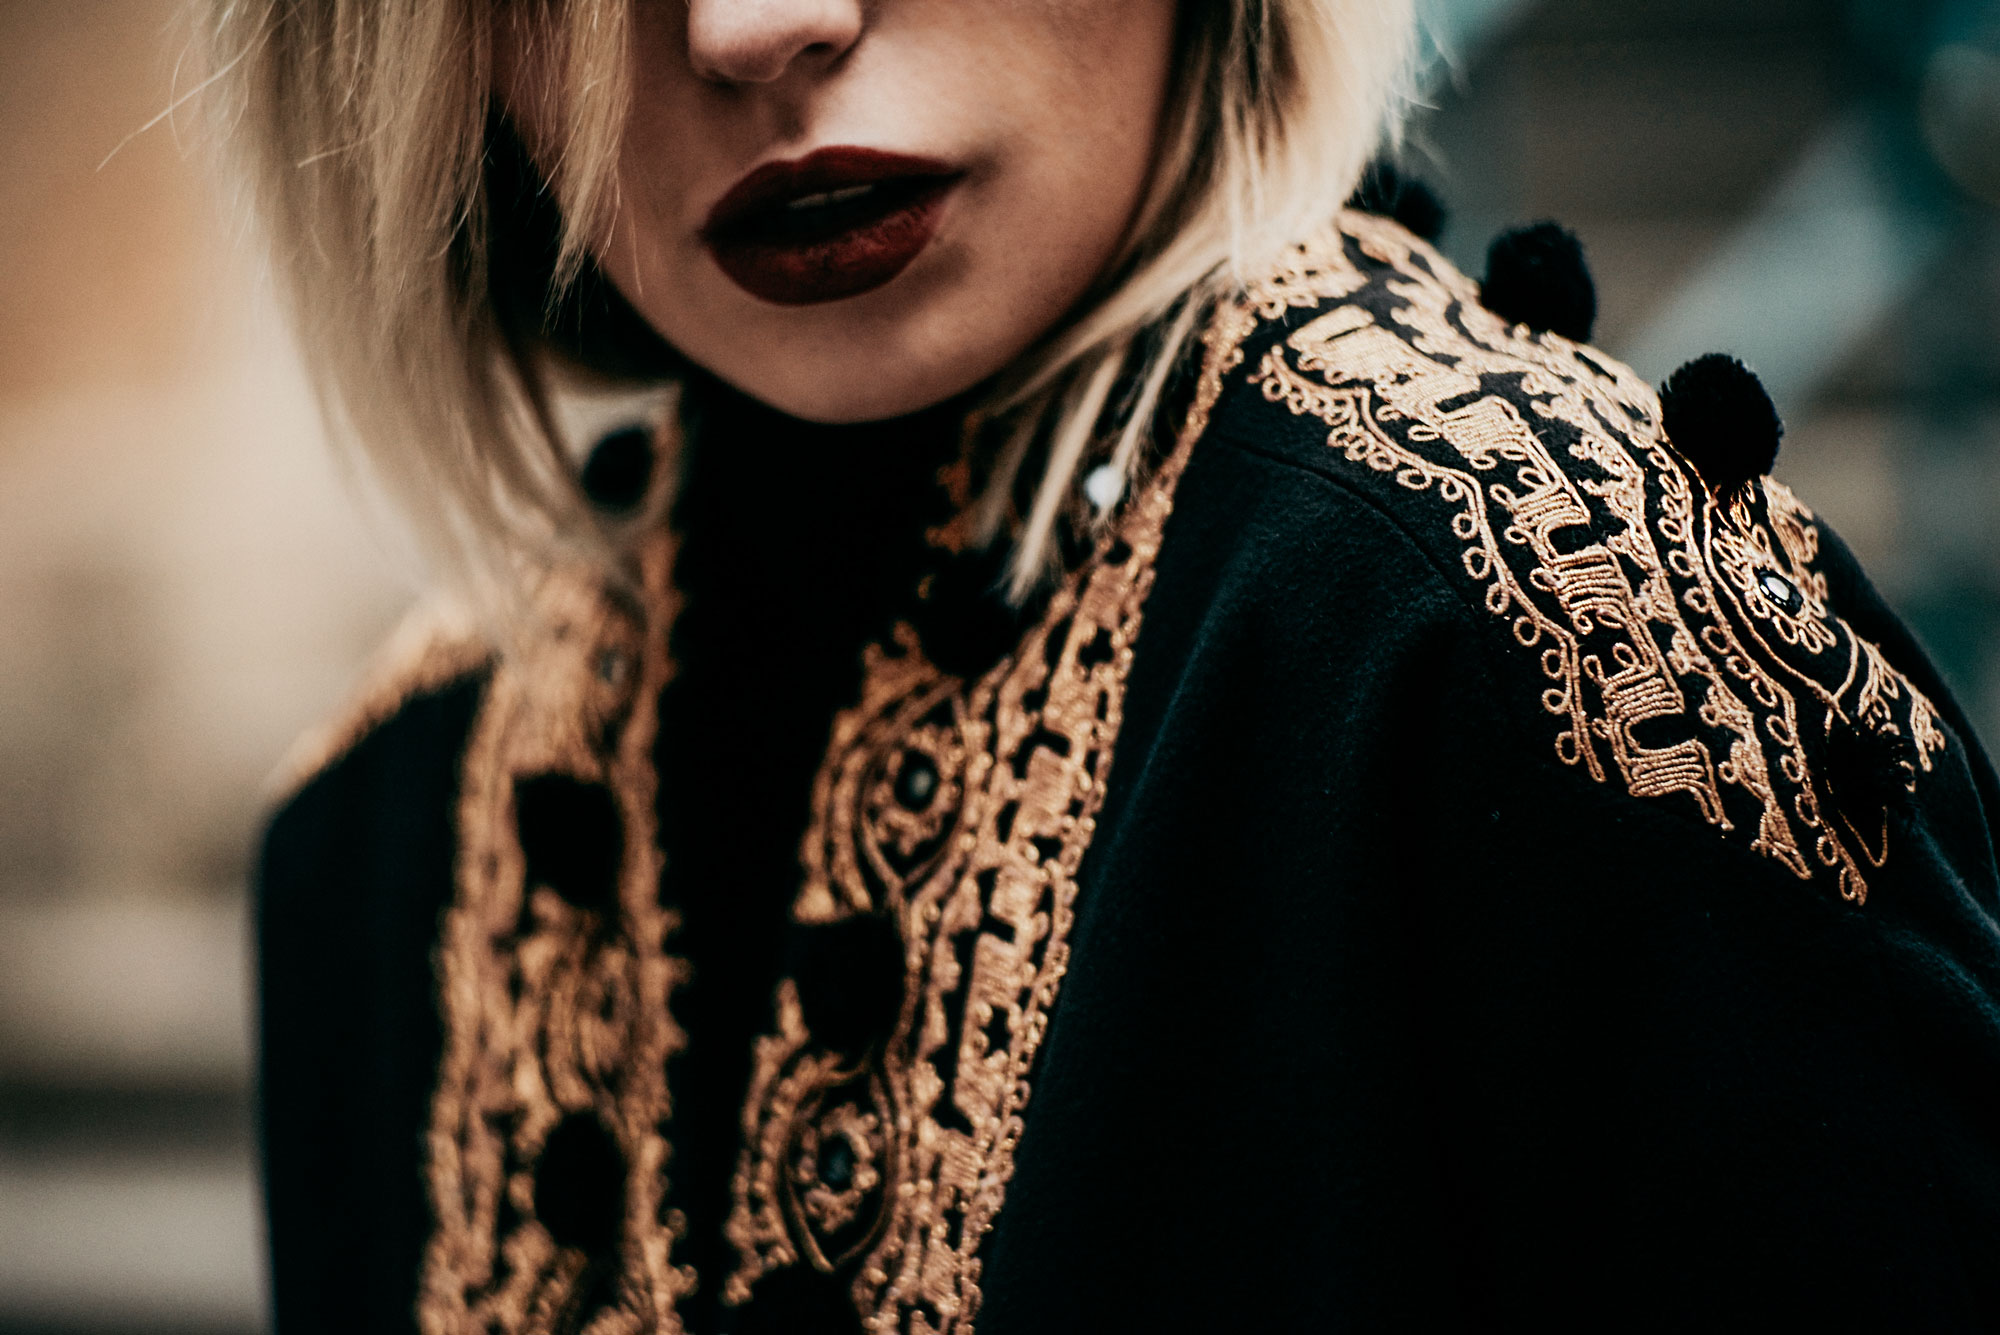 Wishes for 2017 | style: russian, glamorous, folklore, black, golden embroidery, festive, Christmas, vintage | fashion editorial shooting in Berlin